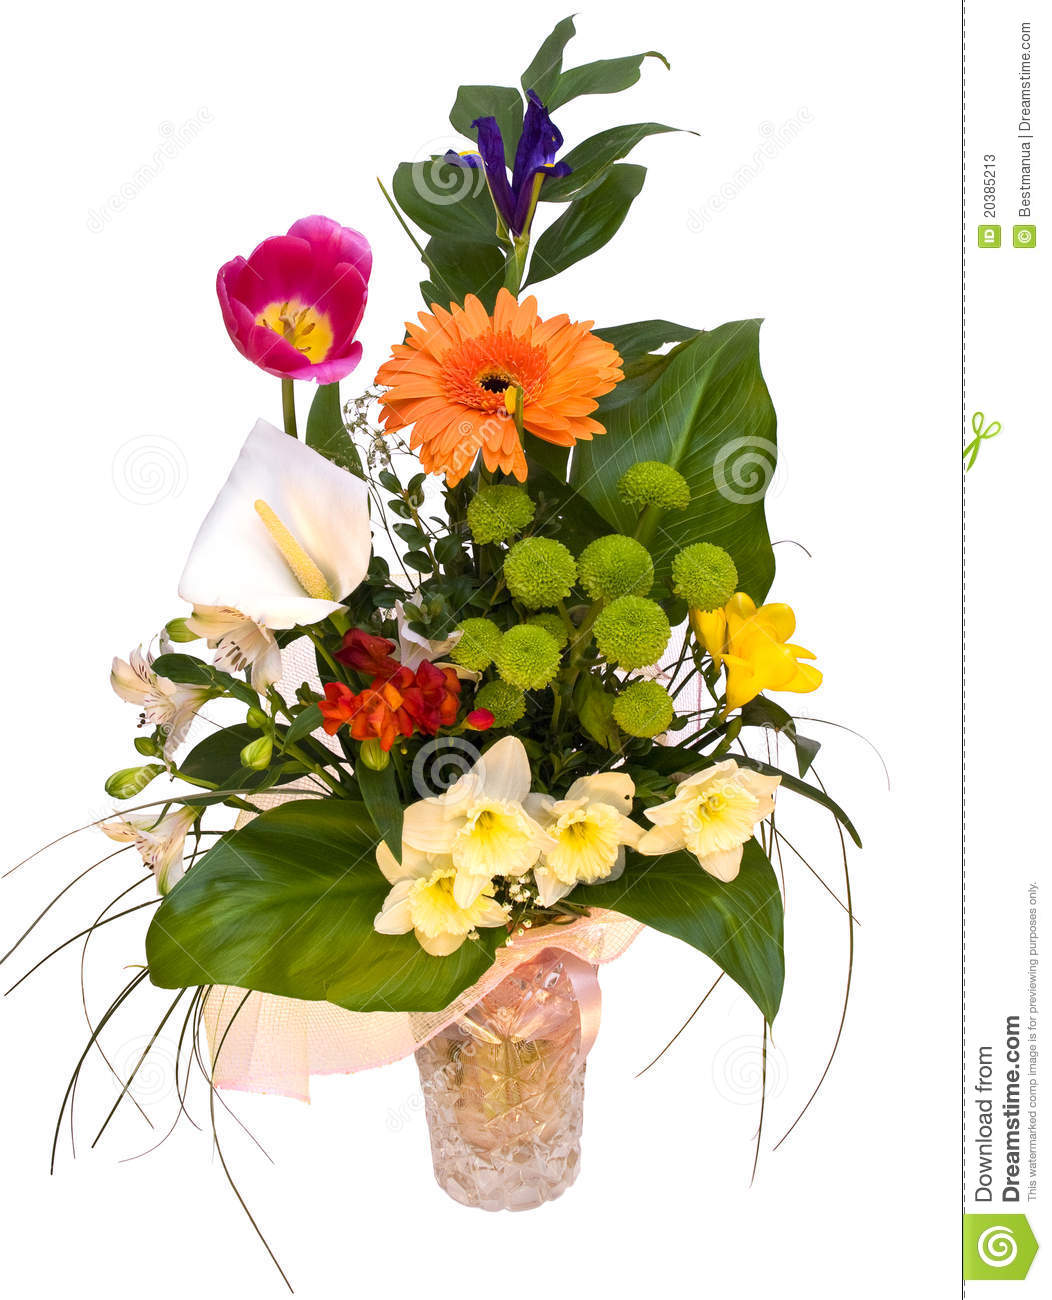 Beautiful Bouquet Of Spring Flowers Stock Image - Image of flower ...